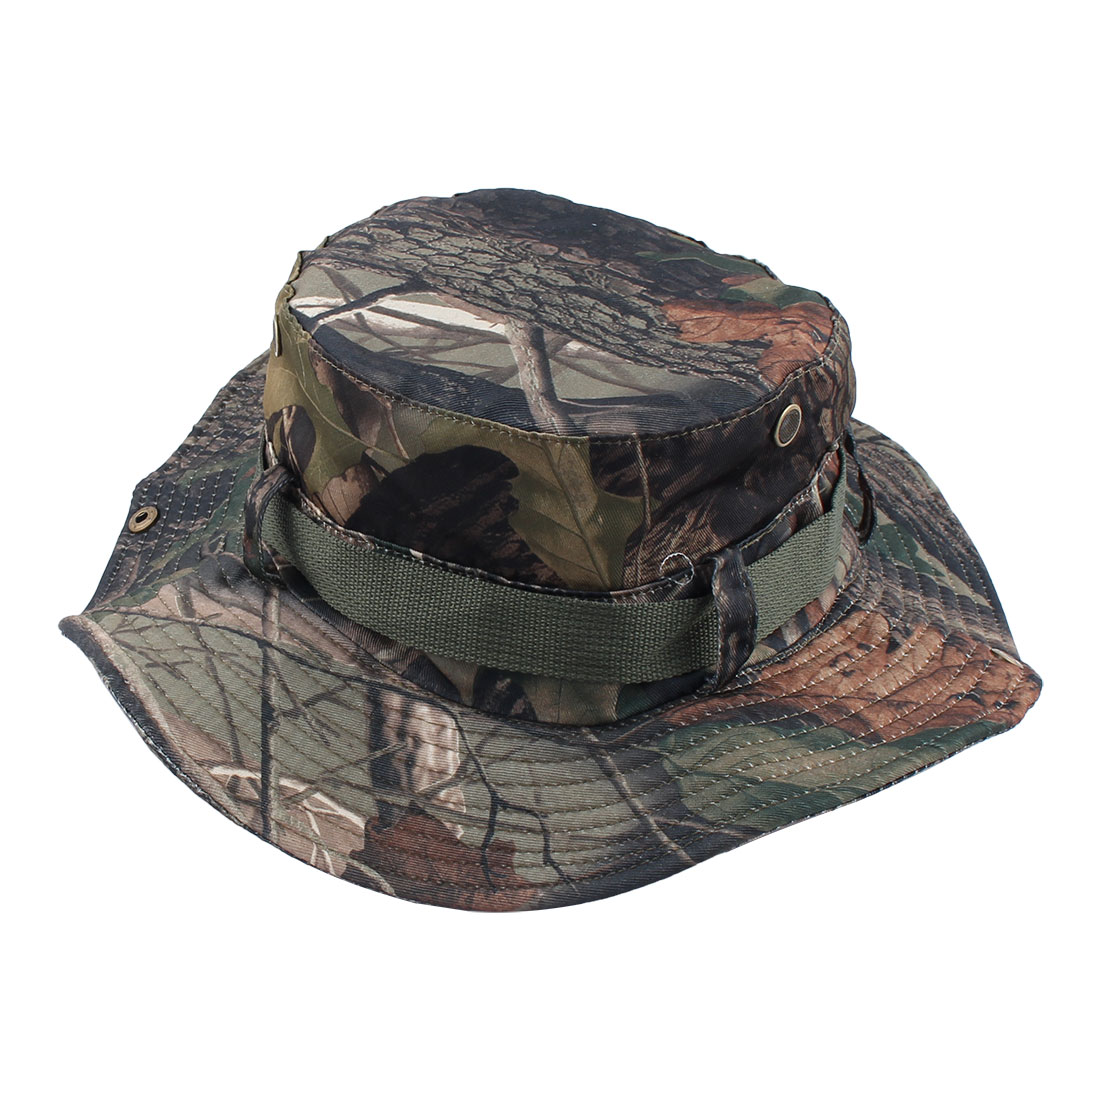 Fisherman Outdoor Sports Hunting Adjustable Strap Wide Brim Protector Bucket Summer Cap Fishing Hat Camouflage